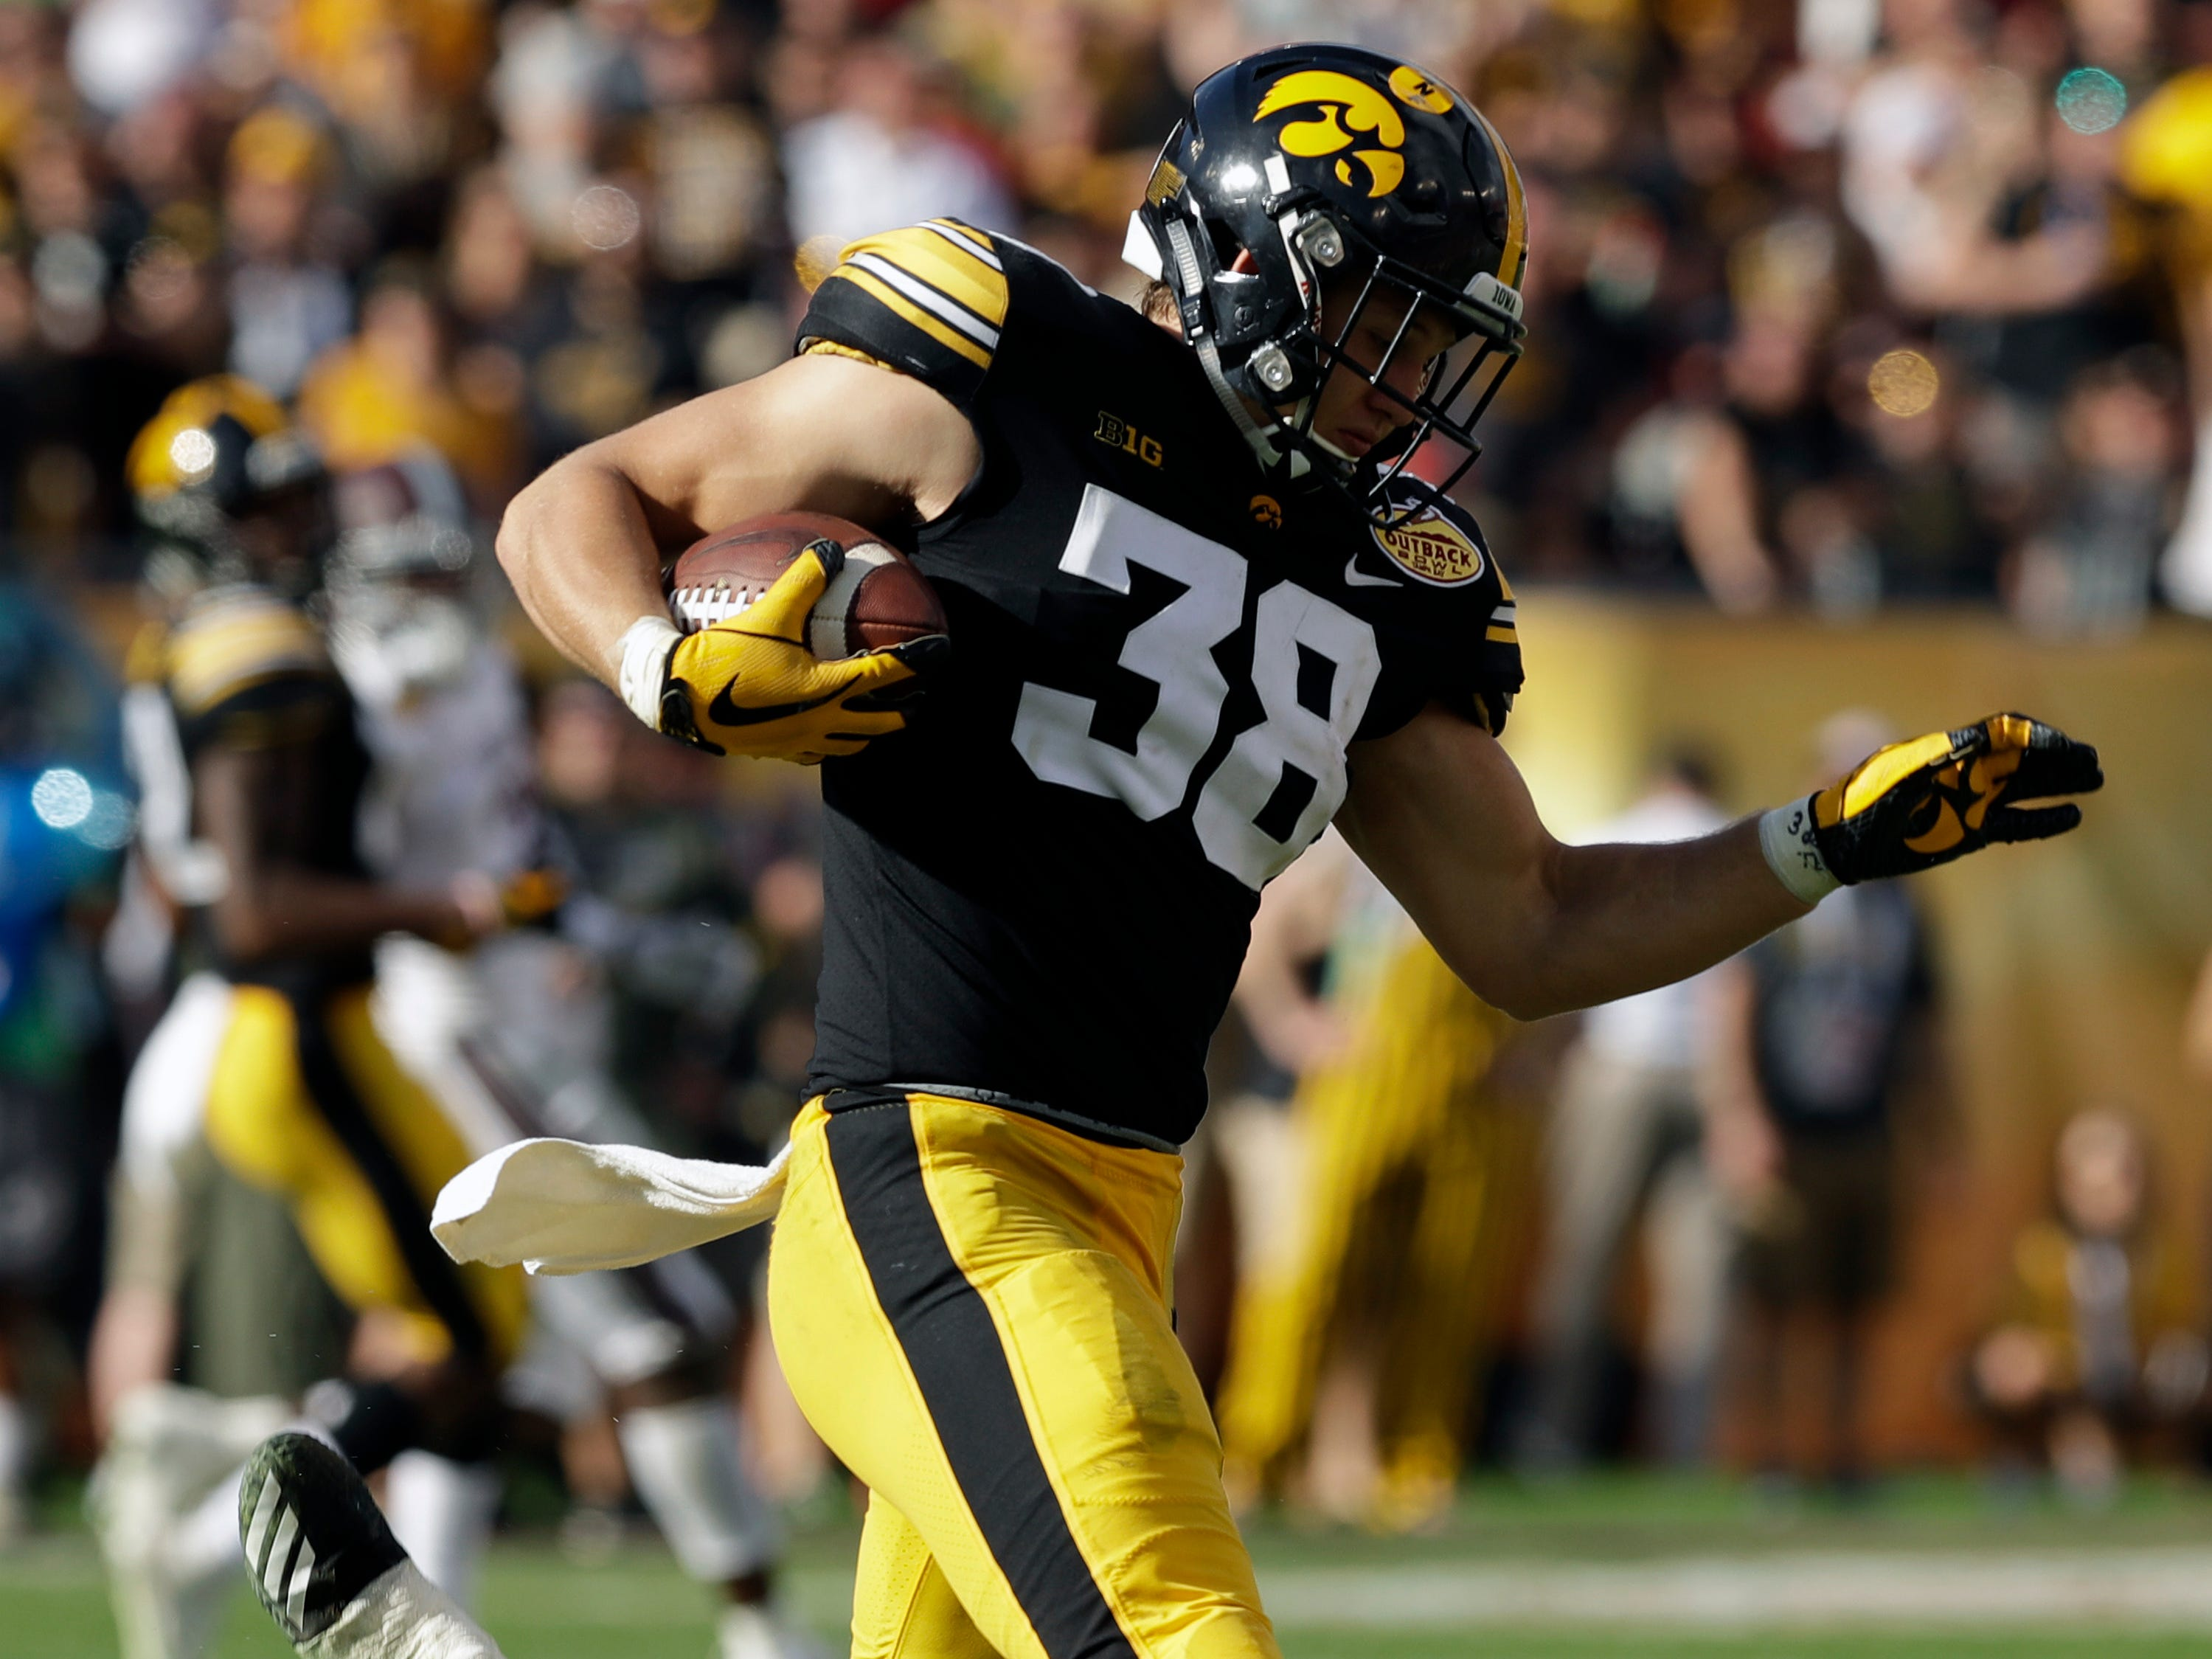 30. Green Bay Packers — T.J. Hockenson, TE, Iowa: The Packers have struggled to get quality production from the tight end spot for years, but with a new scheme coming to Green Bay this year, the talented Hockenson should add another dimension to the team's offense.